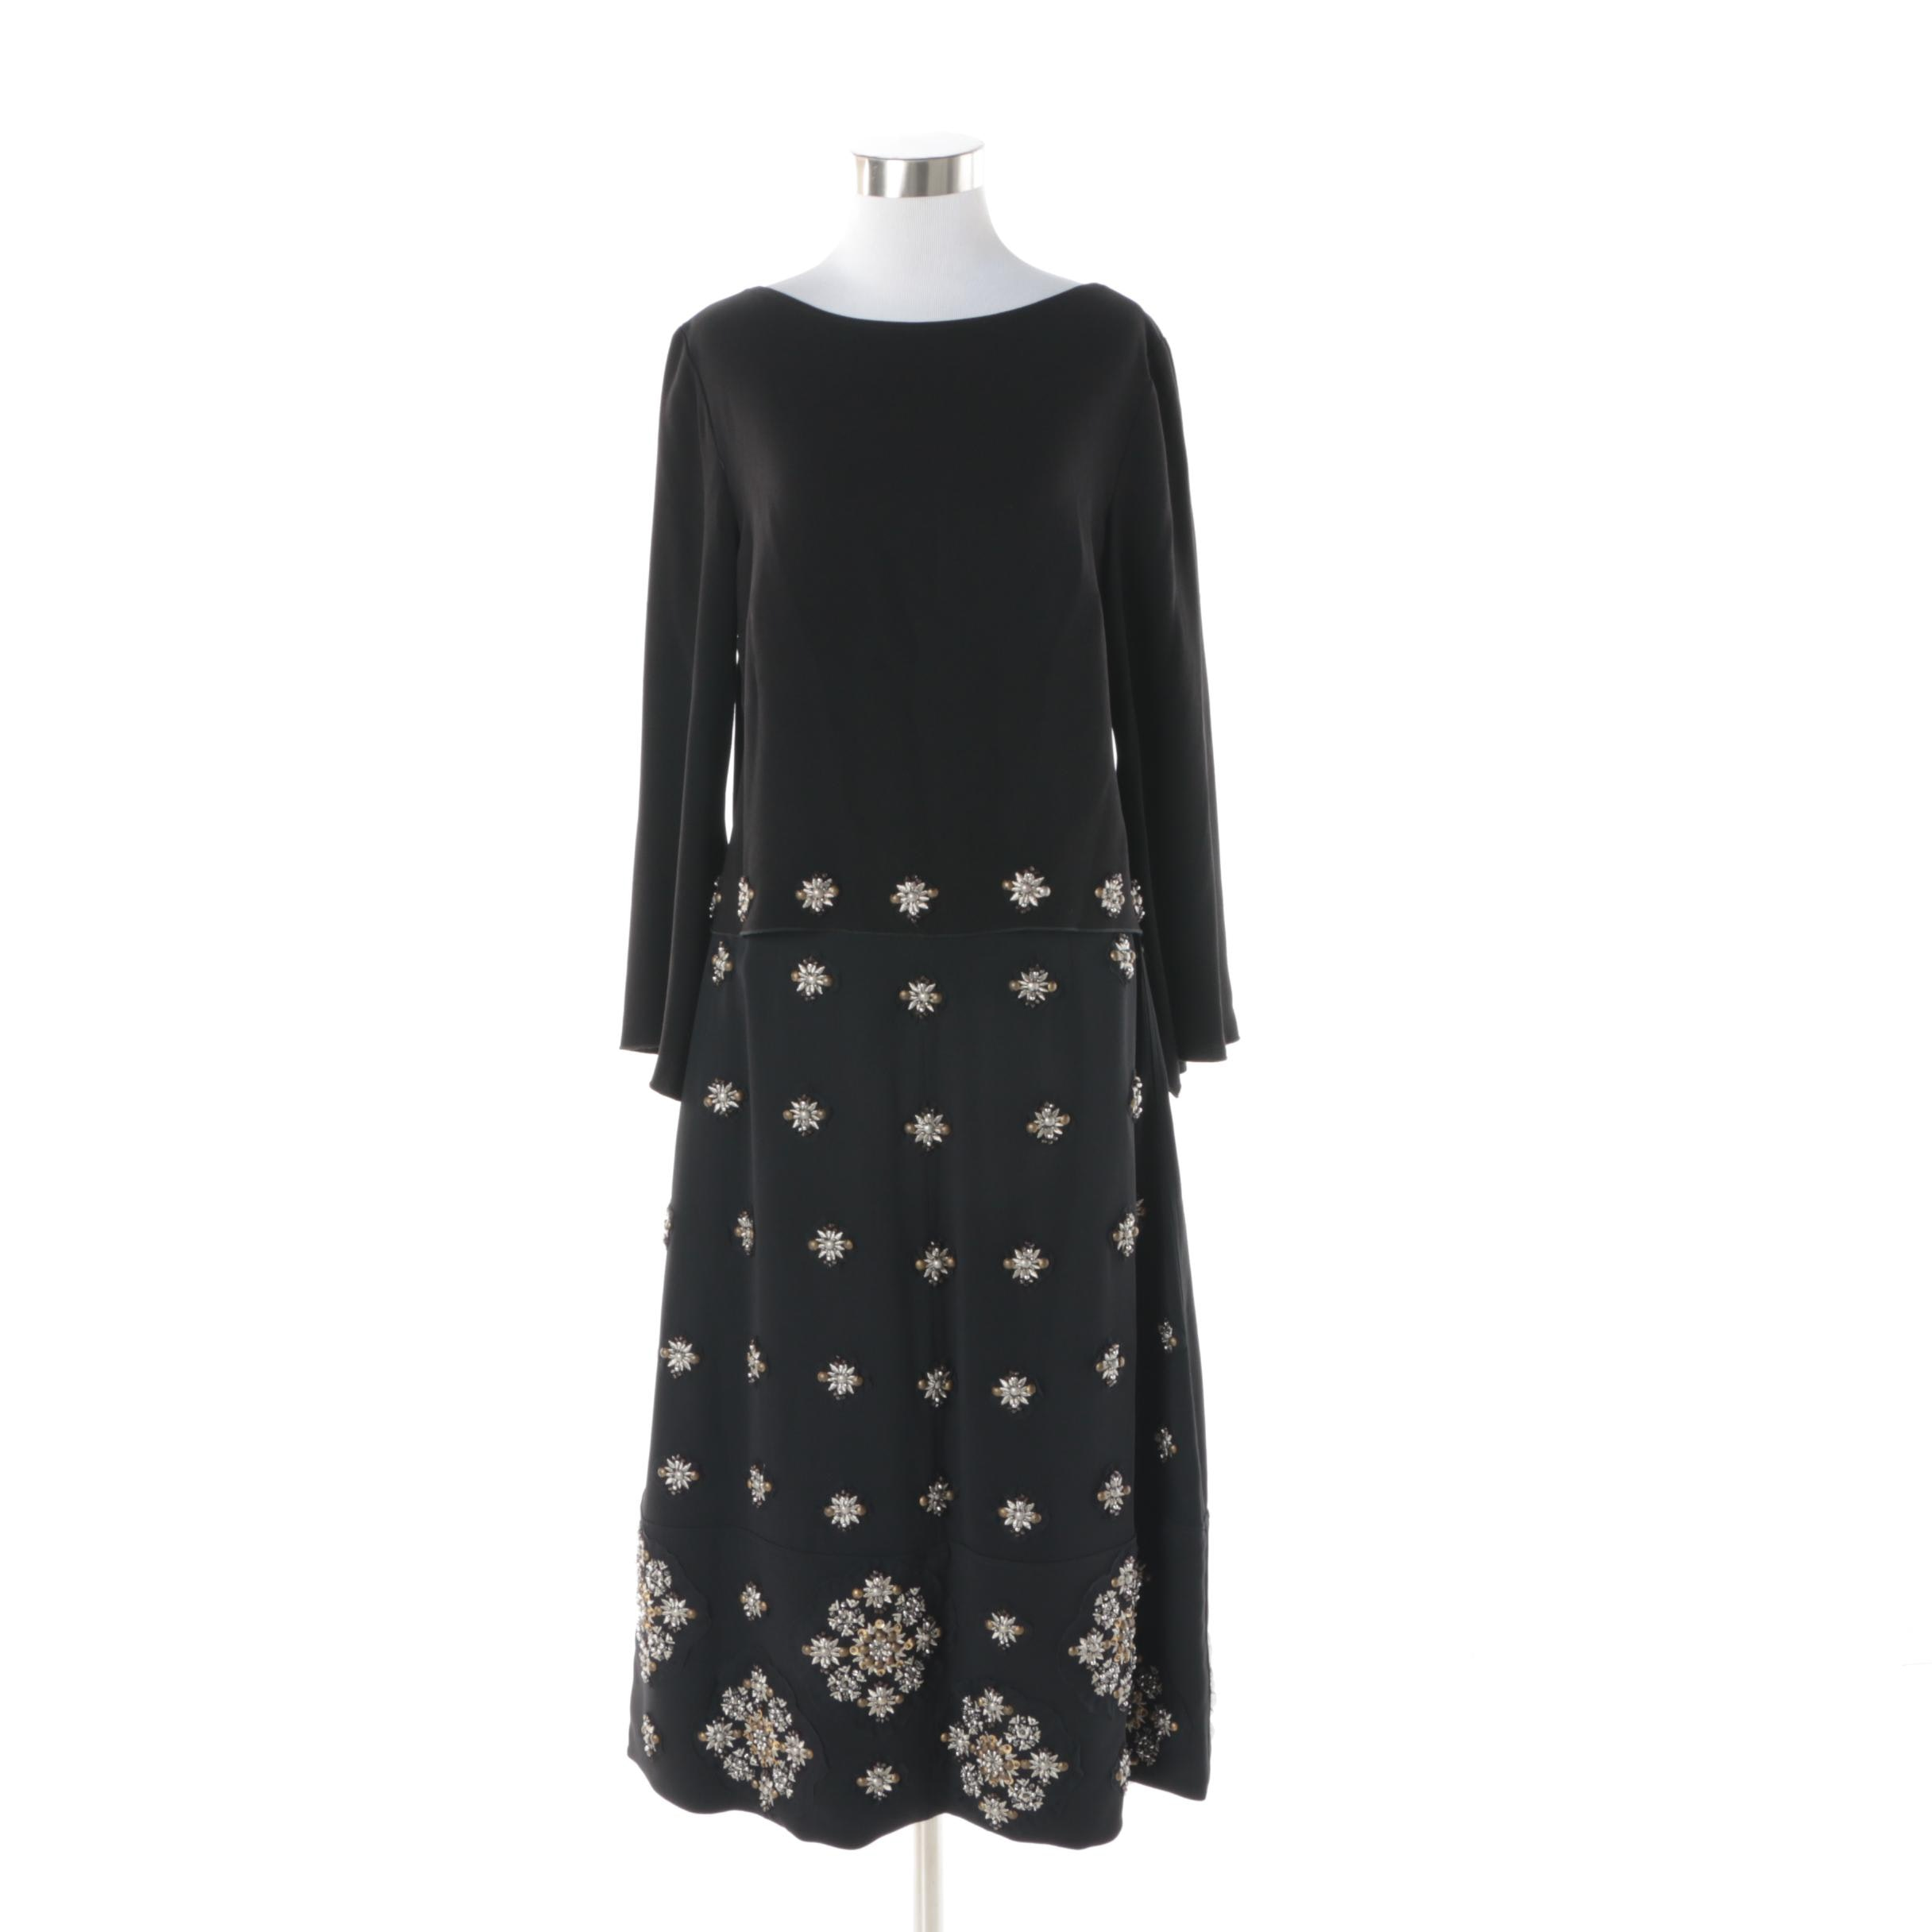 Elizabeth and James Lottie Embellished Skirt and Nico Blouse